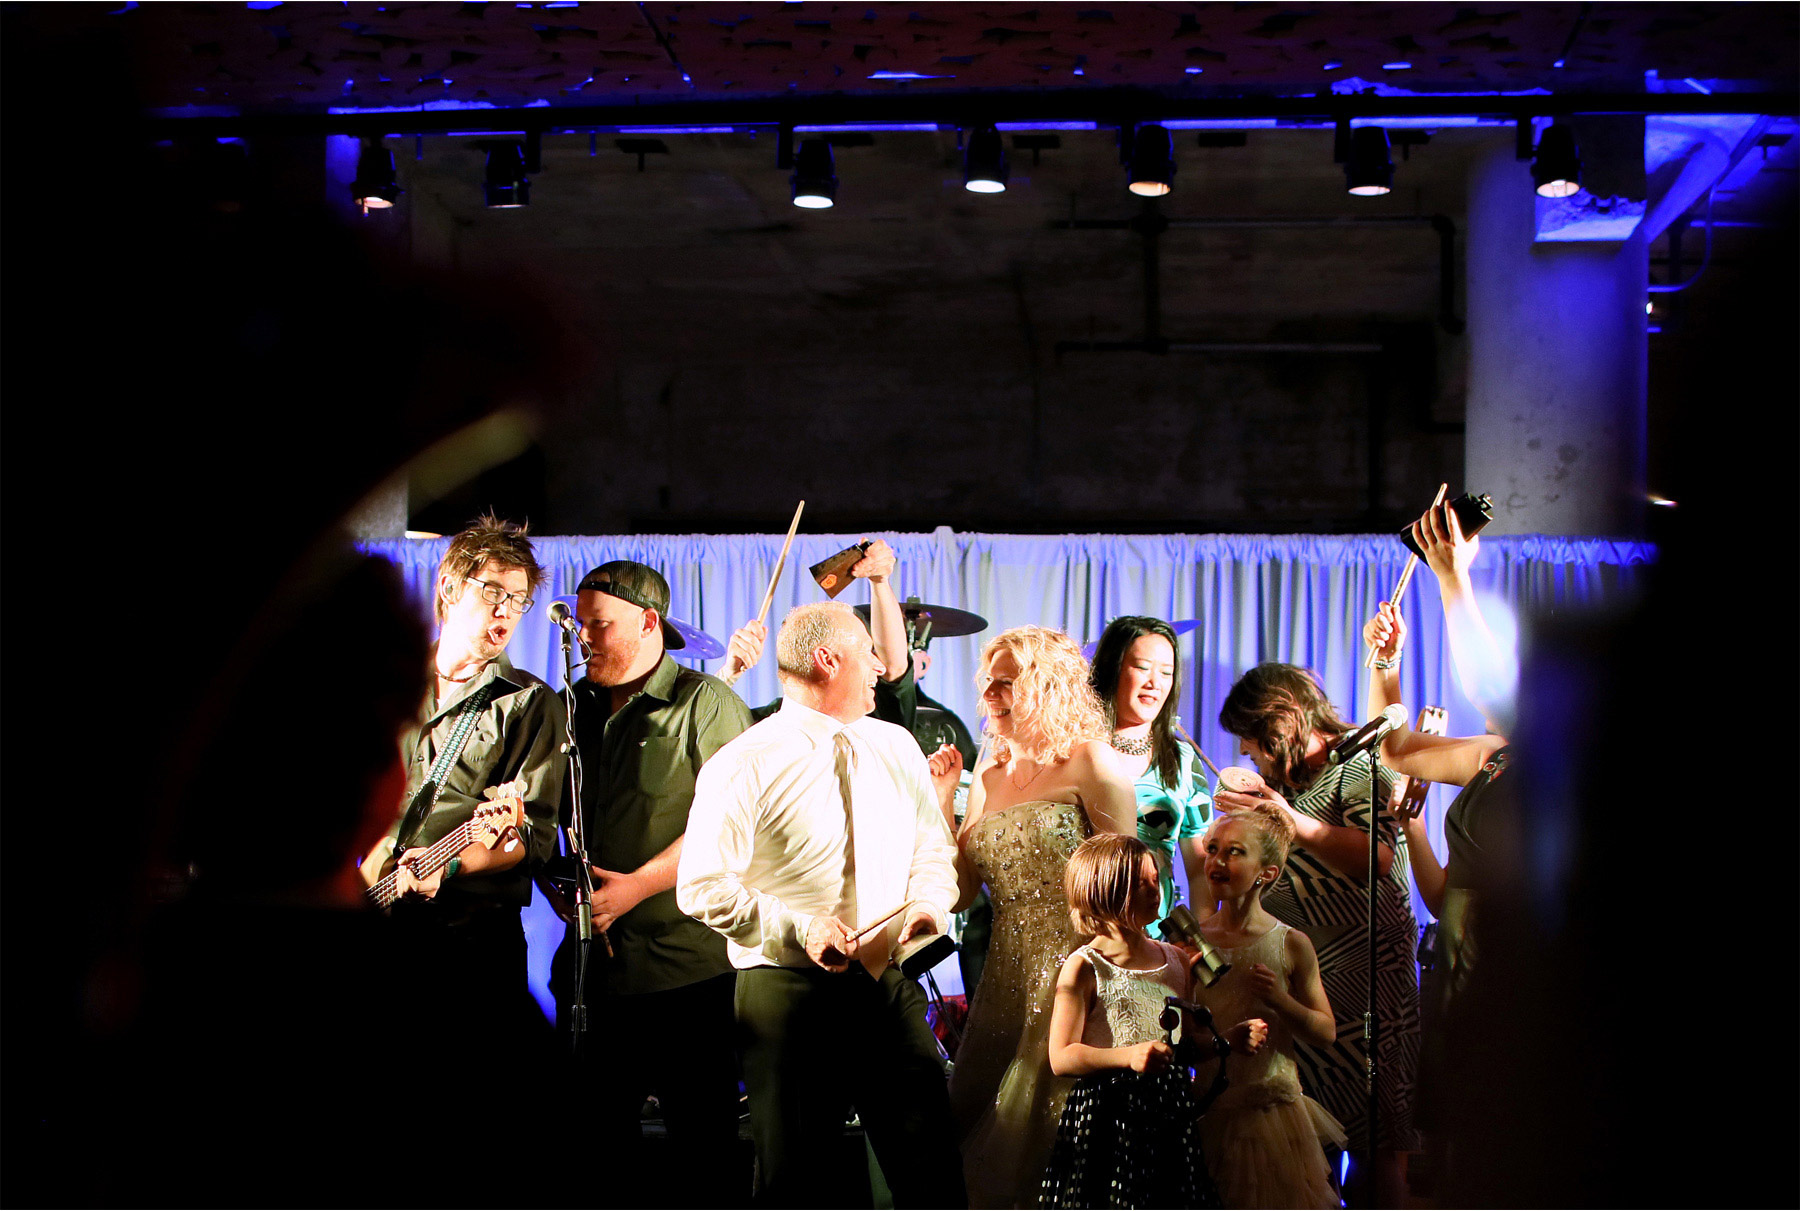 16-Minneapolis-Minnesota-Wedding-Photographer-by-Andrew-Vick-Photography-Spring-Mill-City-Museum-Downtown-Bride-Groom-Dance-Cowbell-Band-Musicians-Dannette-and-Darren.jpg